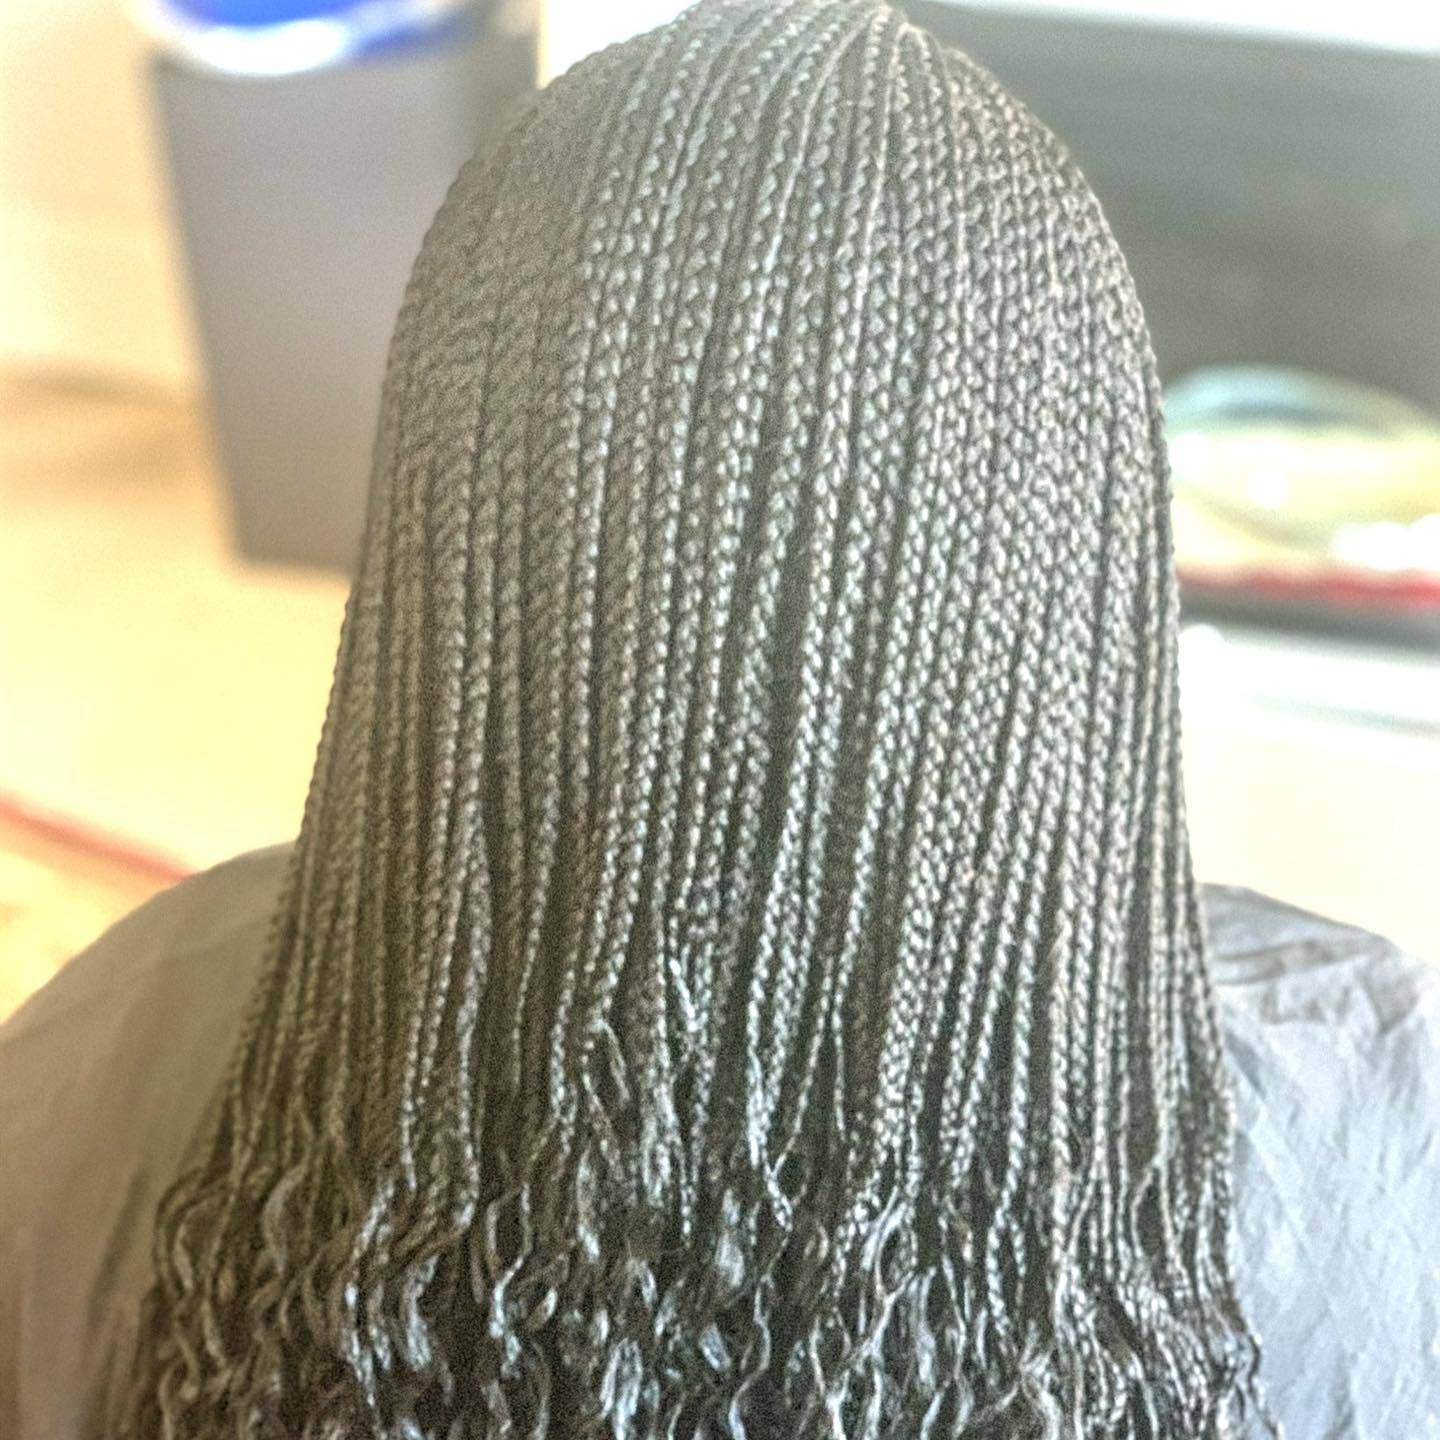 Small Individual braids completed in Alexandria, VA